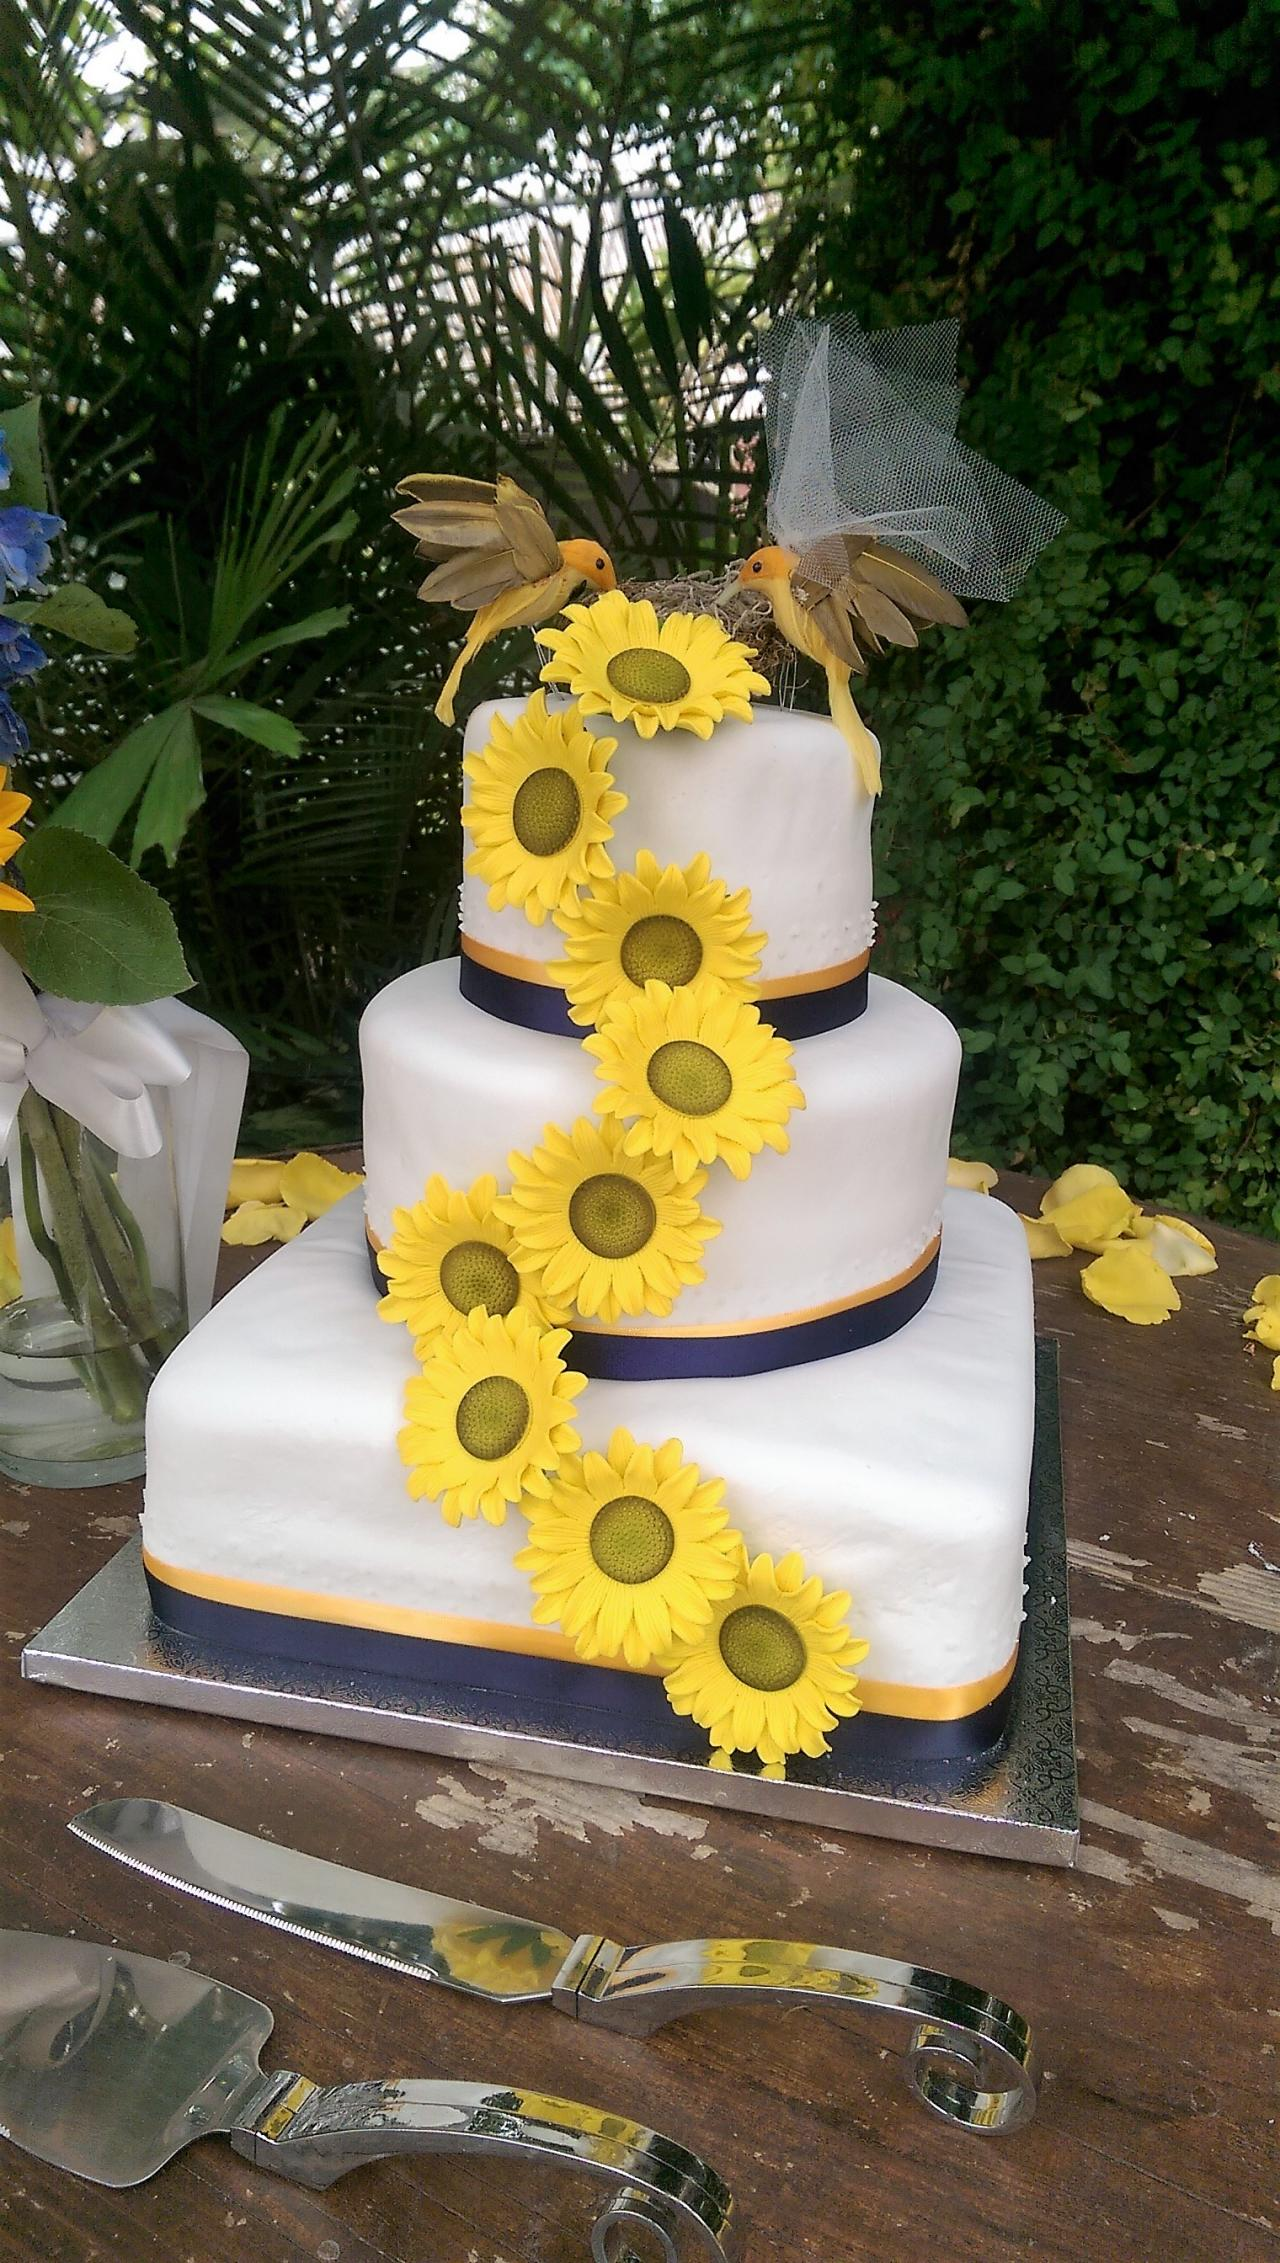 My Goodness Cakes - Wedding Cake Gallery 1